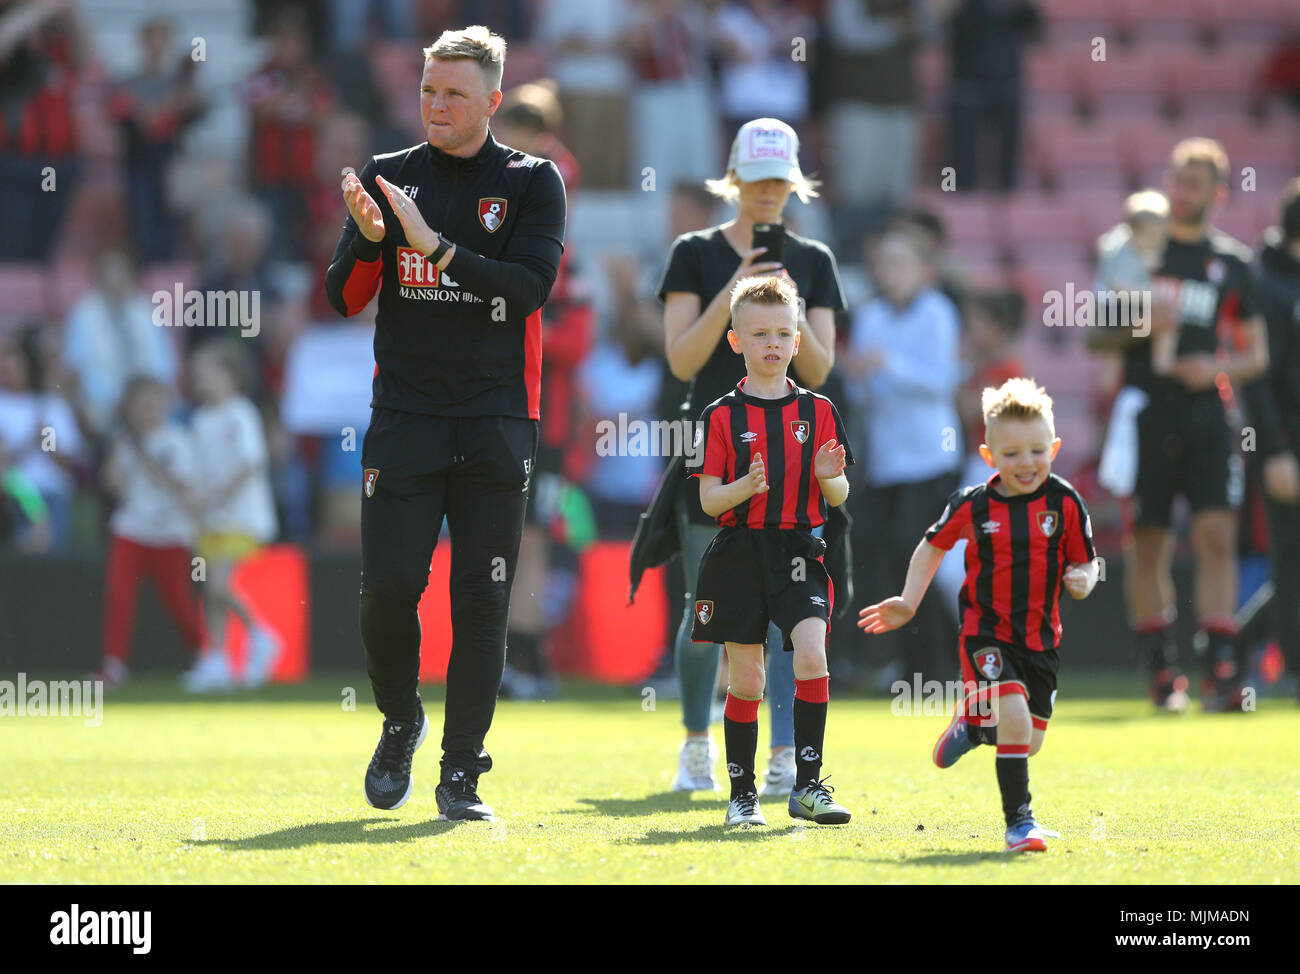 Afc Bournemouth Manager Eddie Howe Celebrates On The Pitch With His Sons Harry And Rocky At The End Of The Premier League Match At The Vitality Stadium Bournemouth Stock Photo Alamy